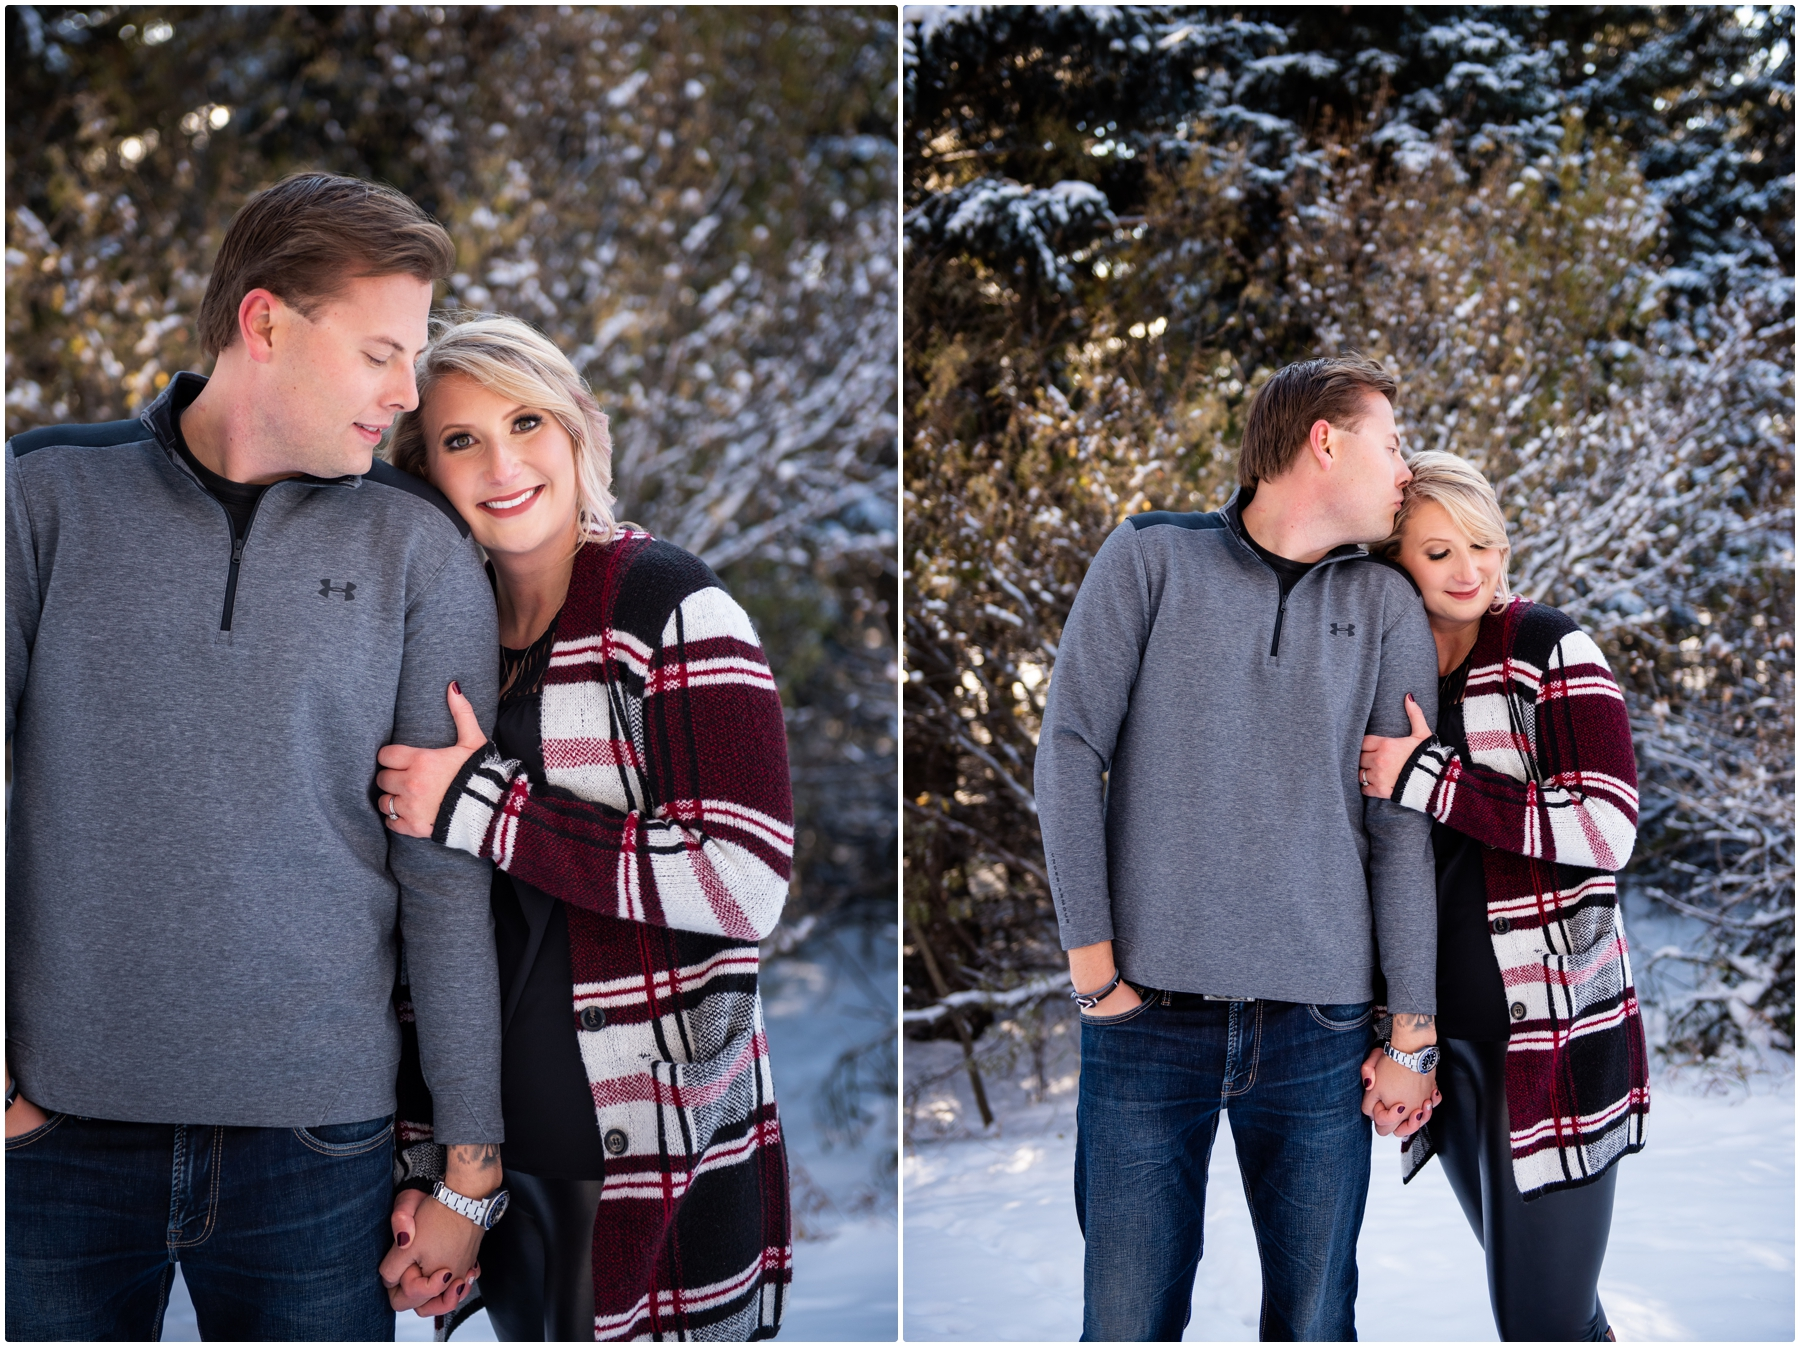 Calgary Pregnancy Announcement Photo Session- Calgary Maternity Photographer